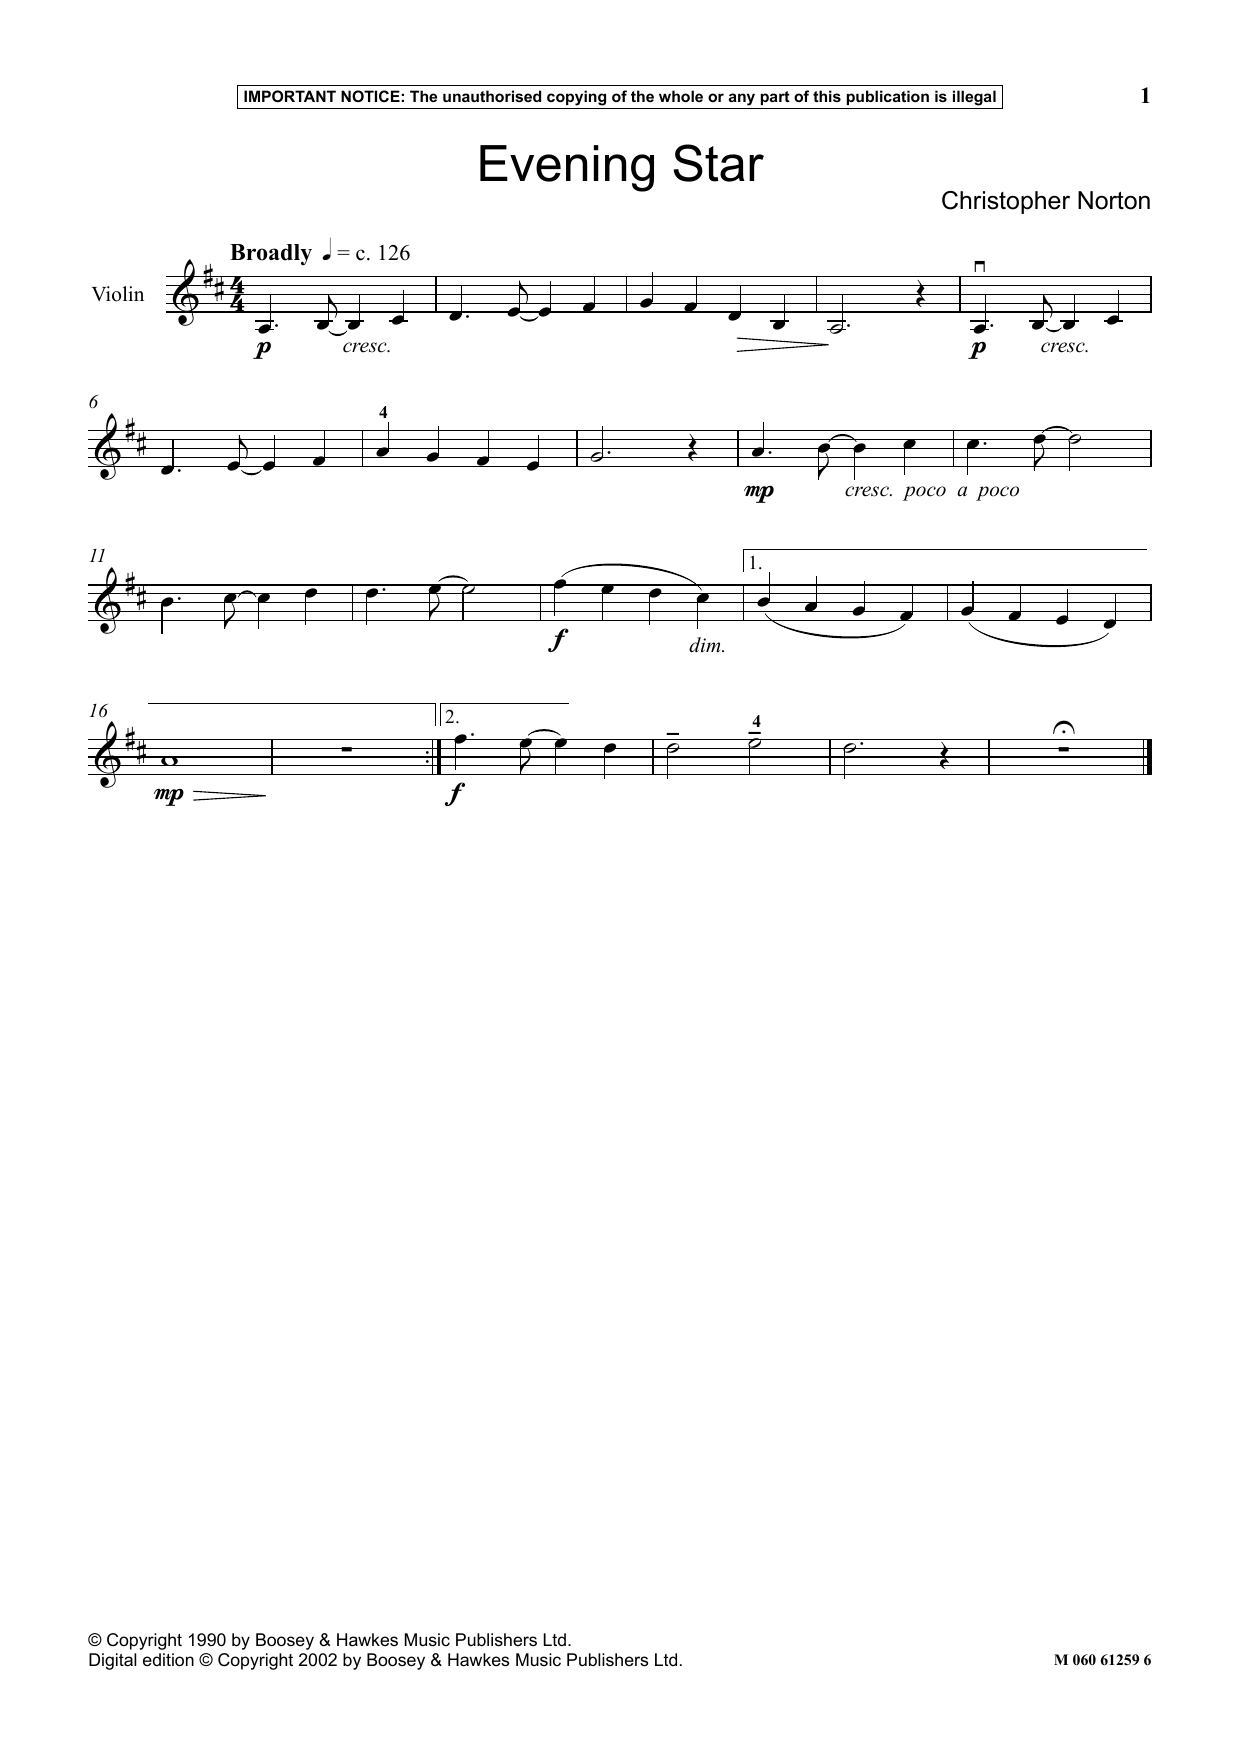 Christopher Norton Evening Star sheet music notes and chords. Download Printable PDF.